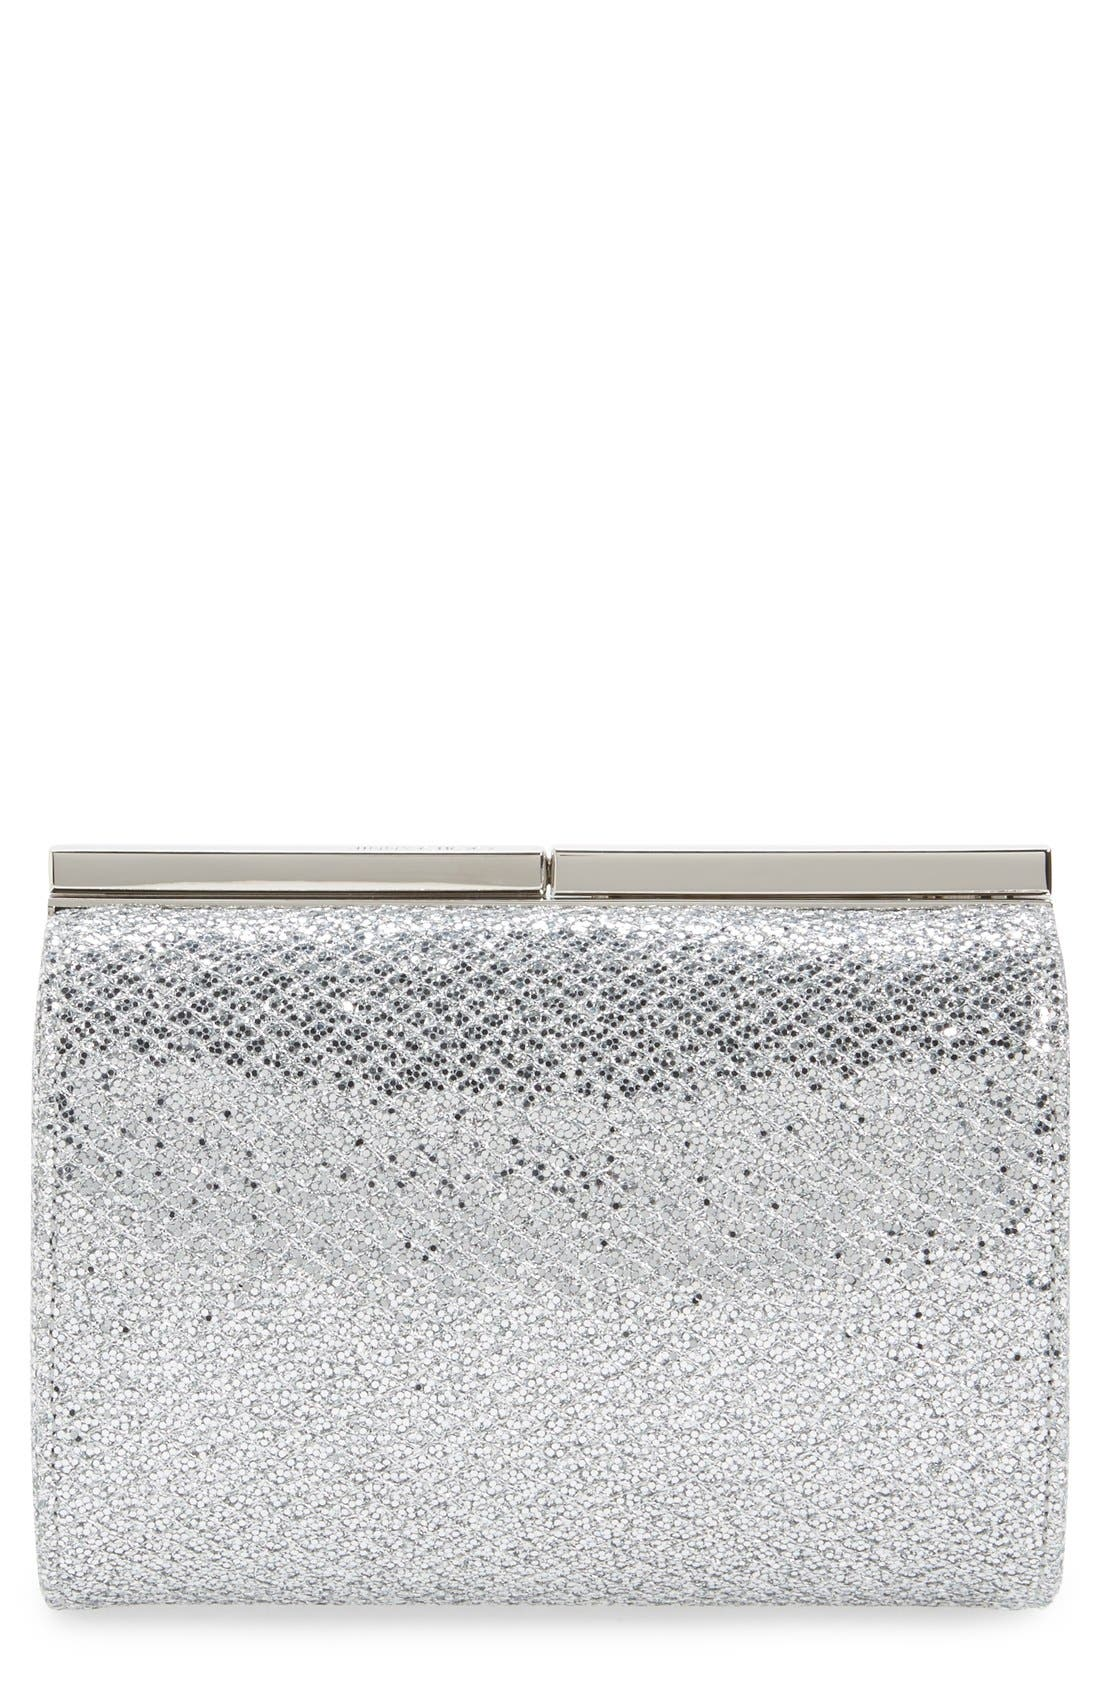 'Cate' Glitter Box Clutch,                         Main,                         color, 040